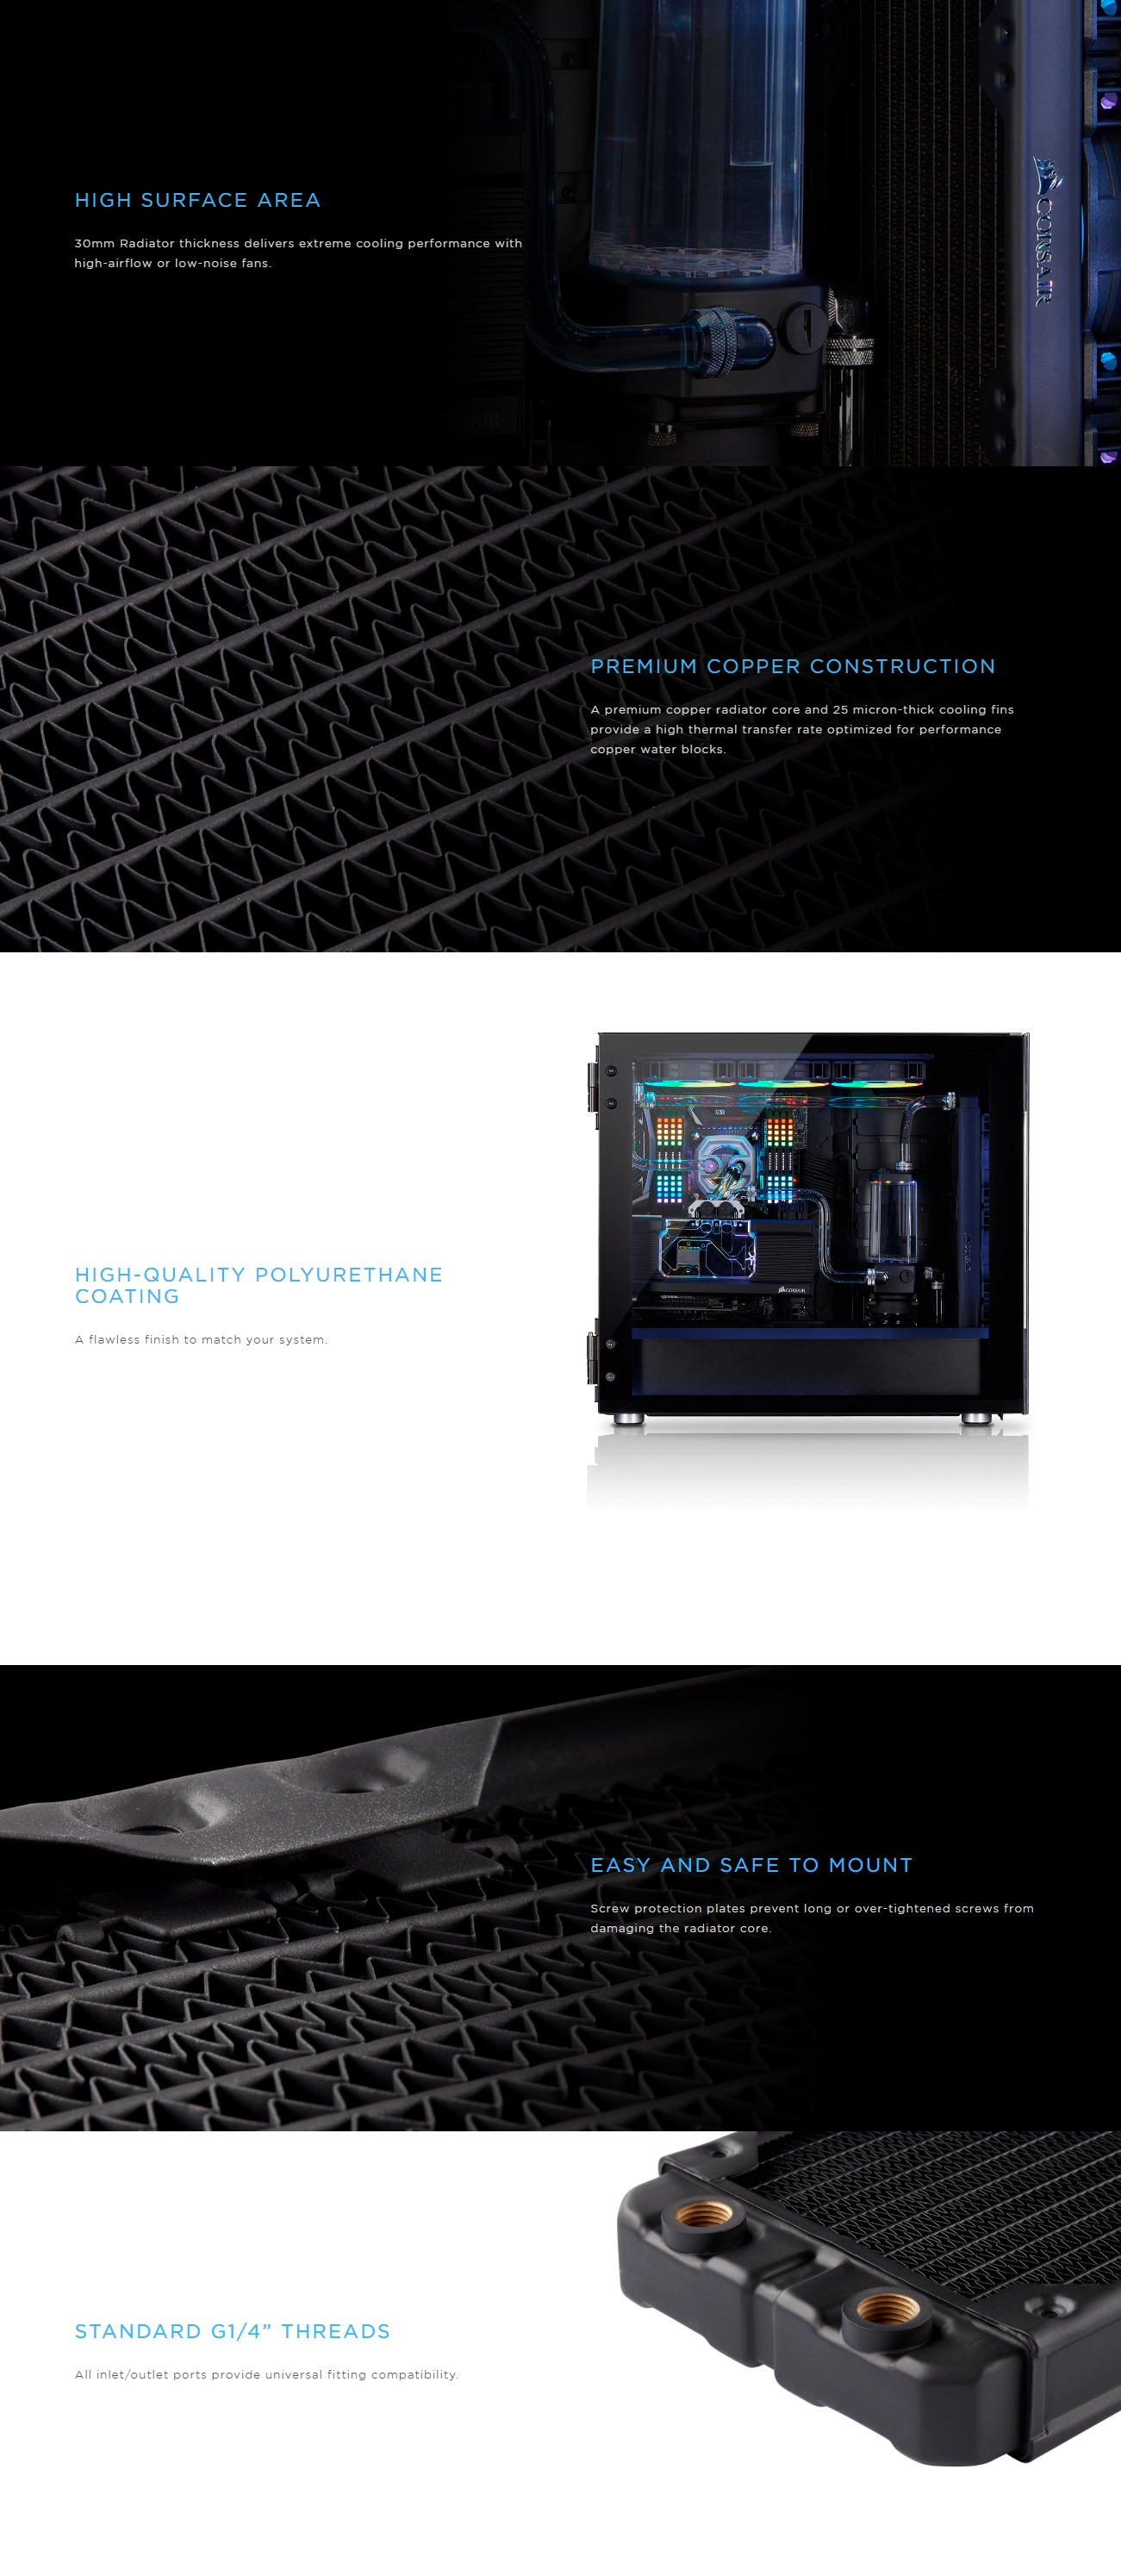 A large marketing image providing additional information about the product Corsair Hydro X Series XR5 240mm Radiator - Additional alt info not provided